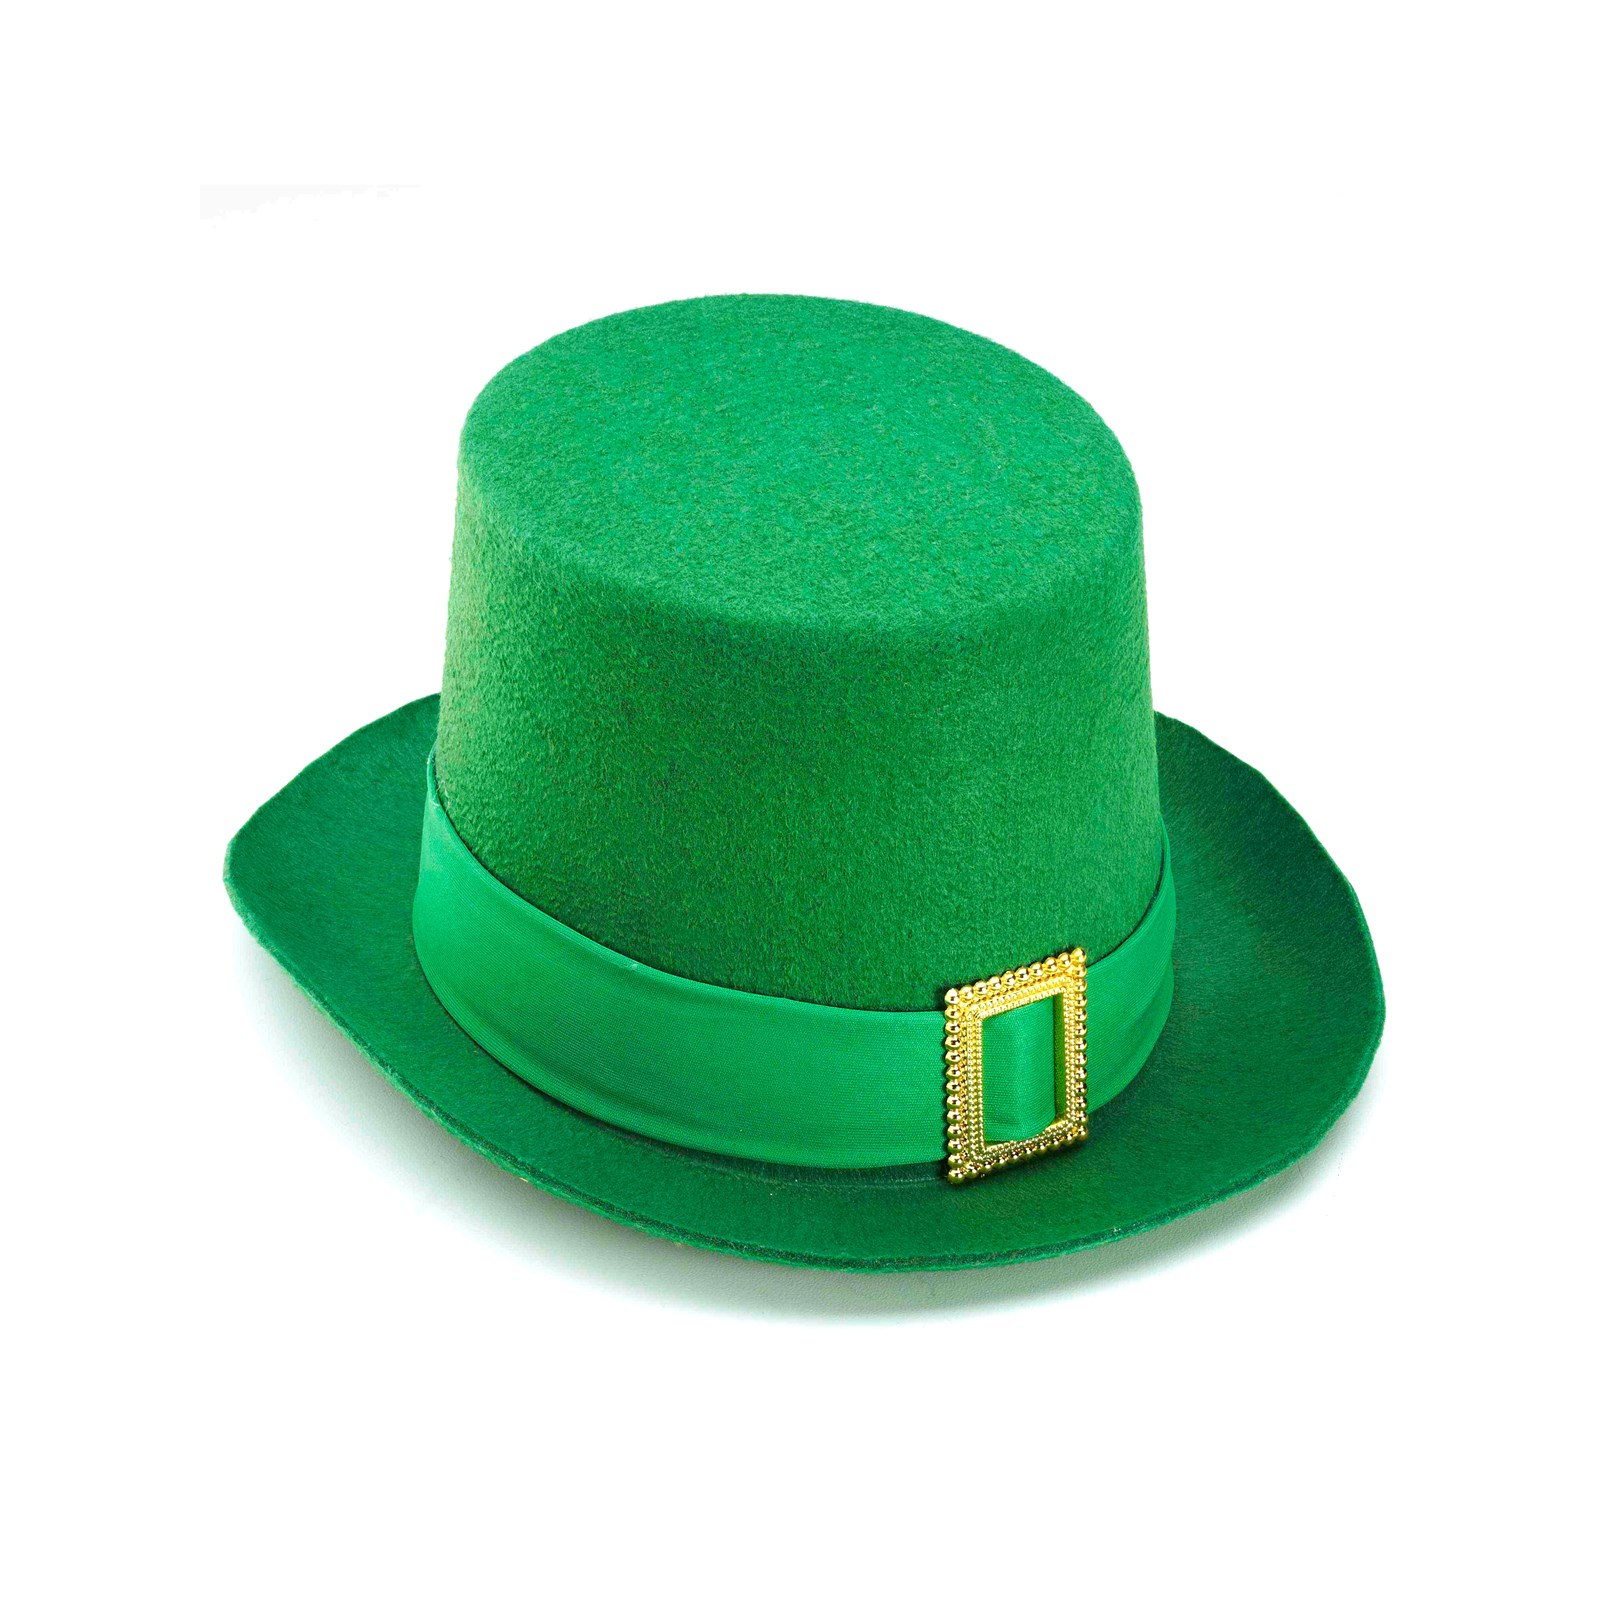 St. Pat's Green Top Hat with Buckle